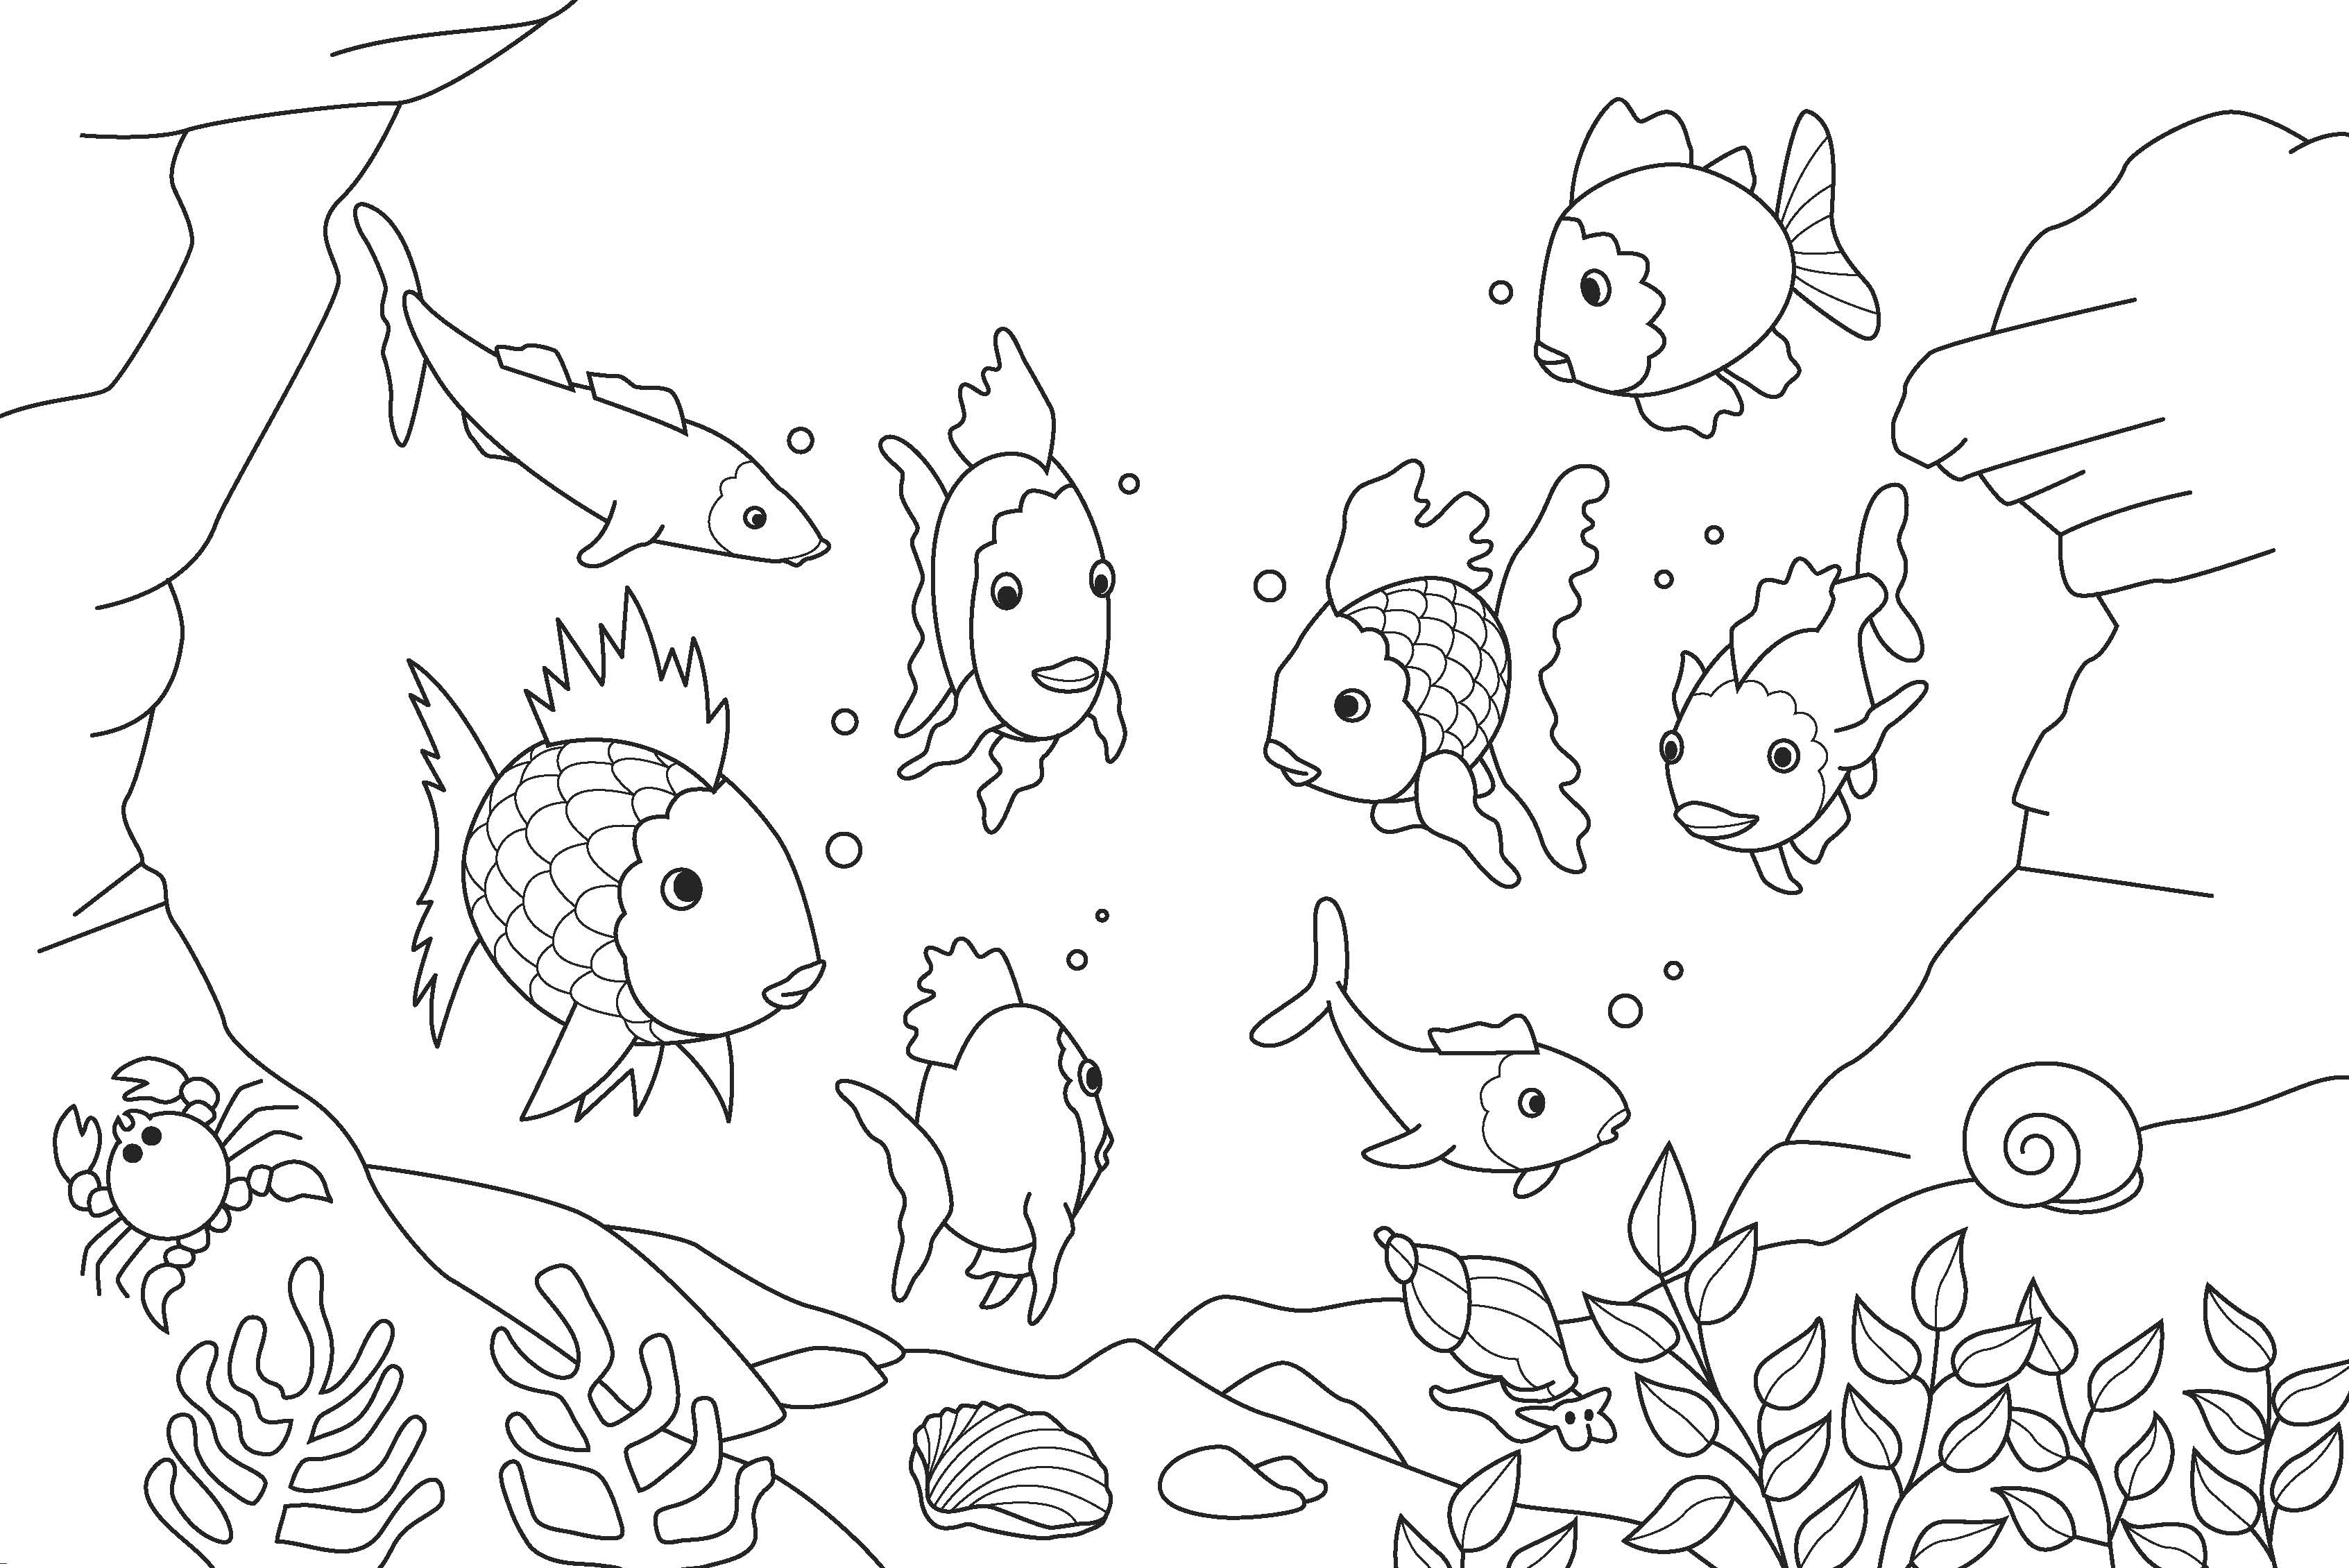 Coloring Pages High Quality Coloring Pages sea world colouring pages high quality coloring az pages